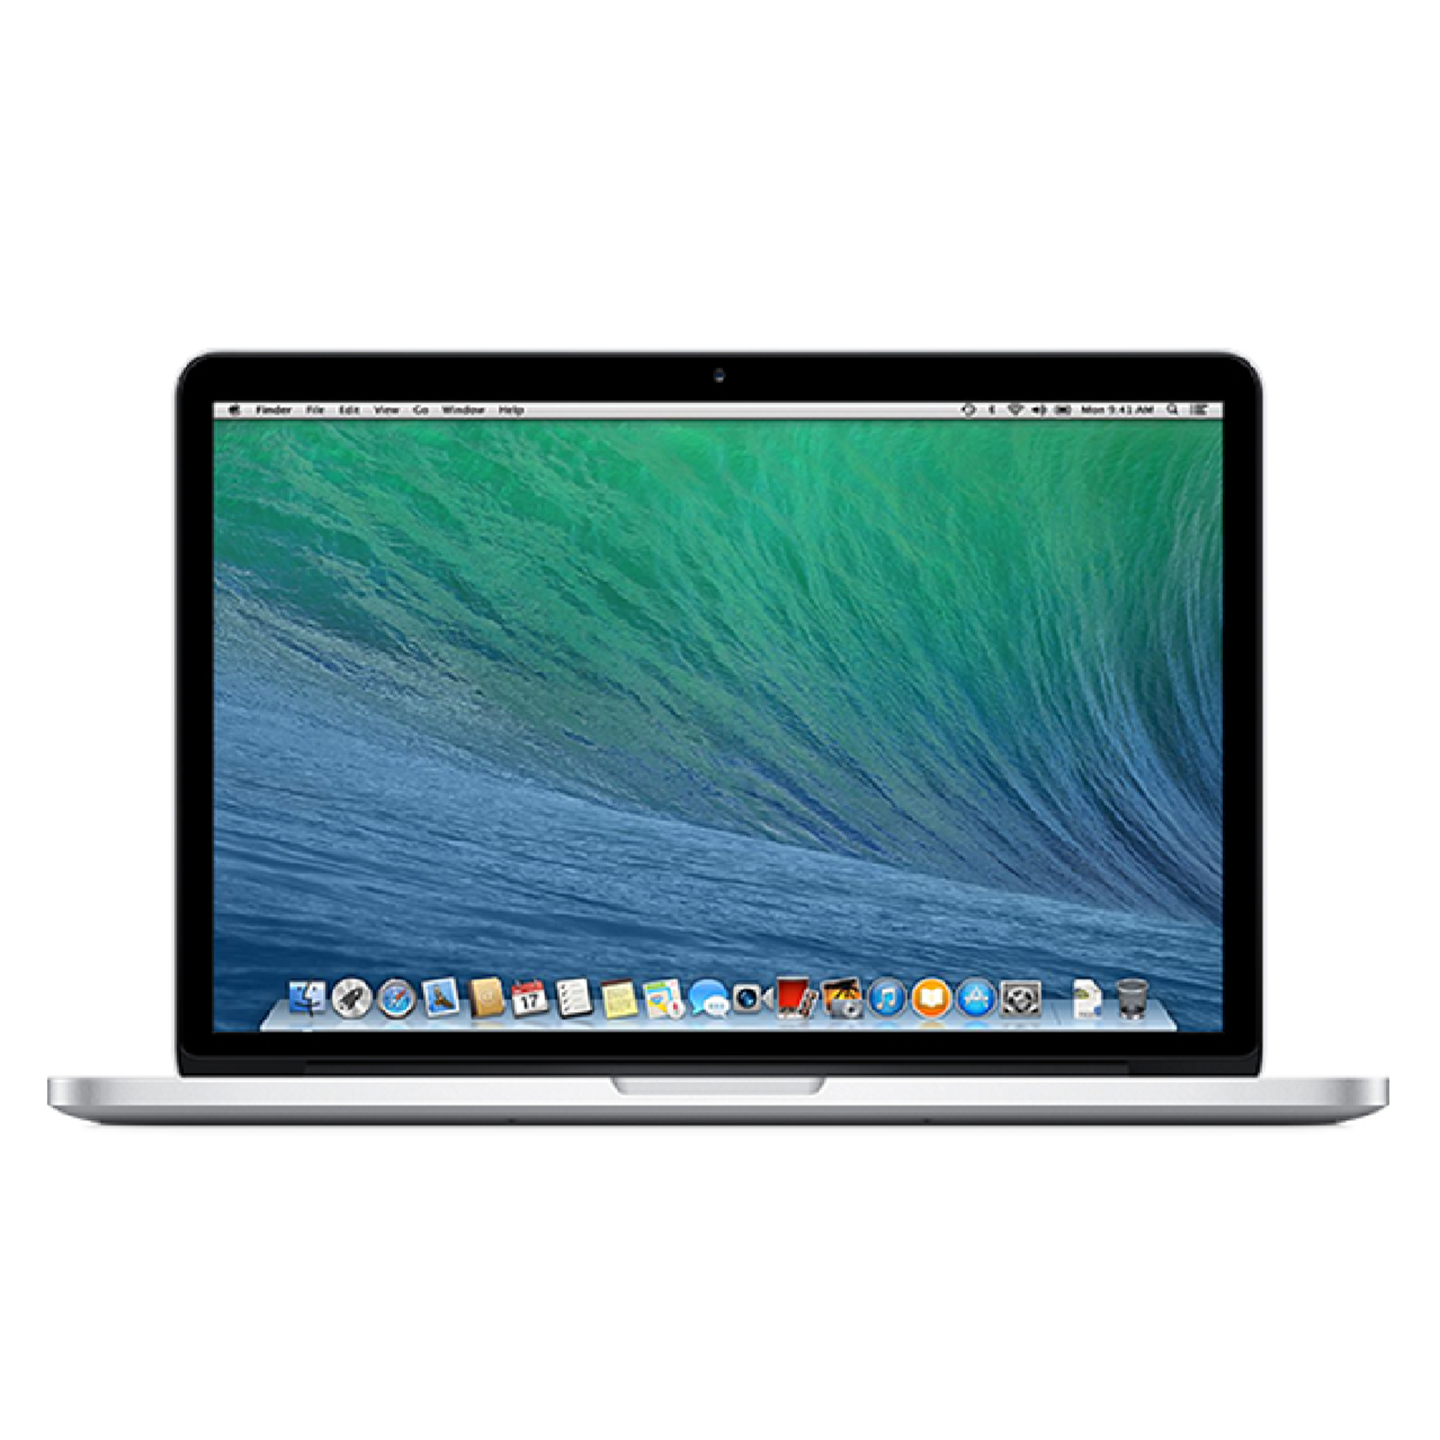 MacBook Pro (Retina, 13-inch, Late 2013)Core i5/8GB/SSD256GB E775